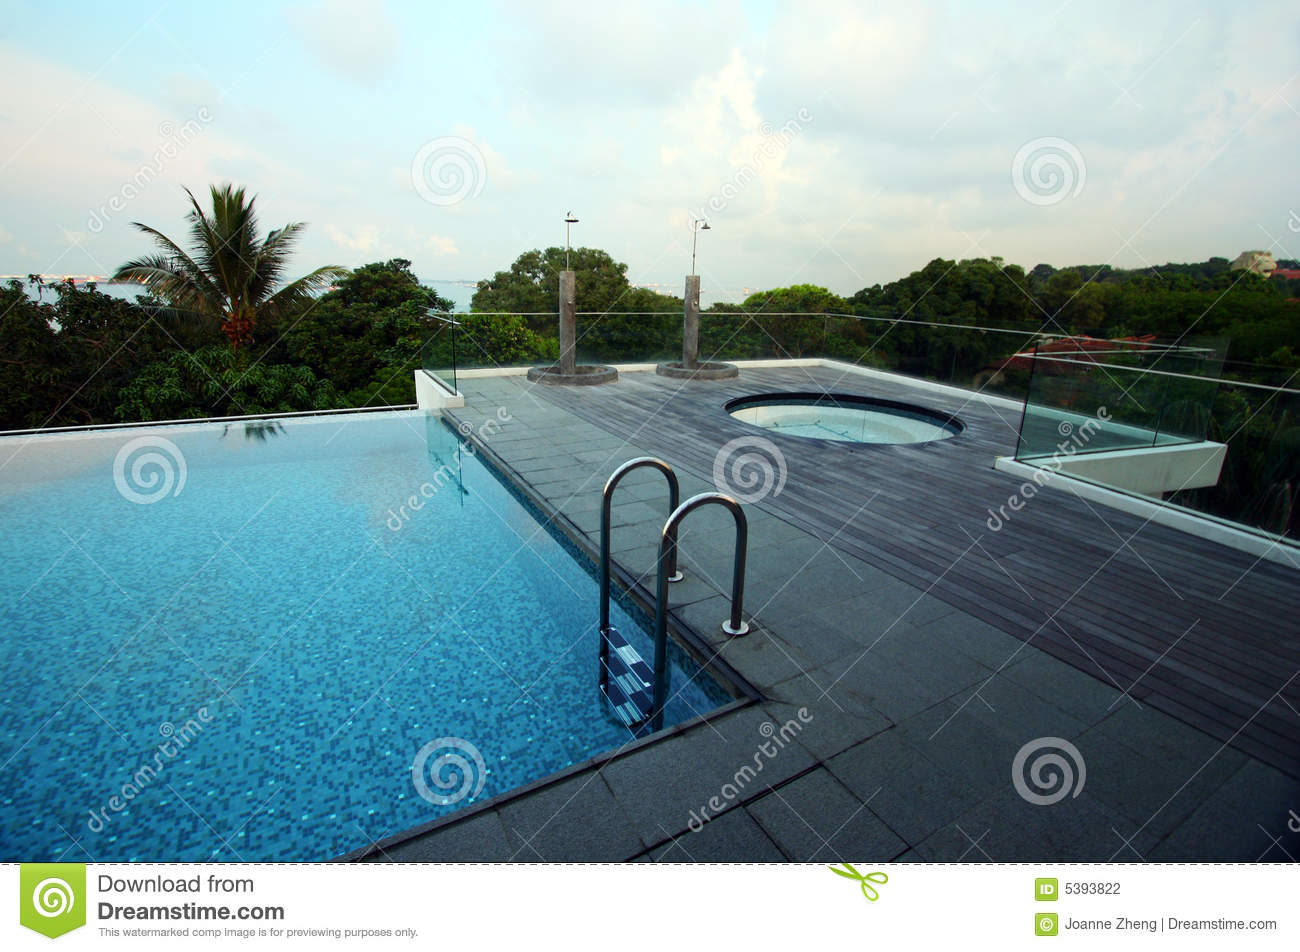 Rooftop infinity pool of resort, with jacuzzi